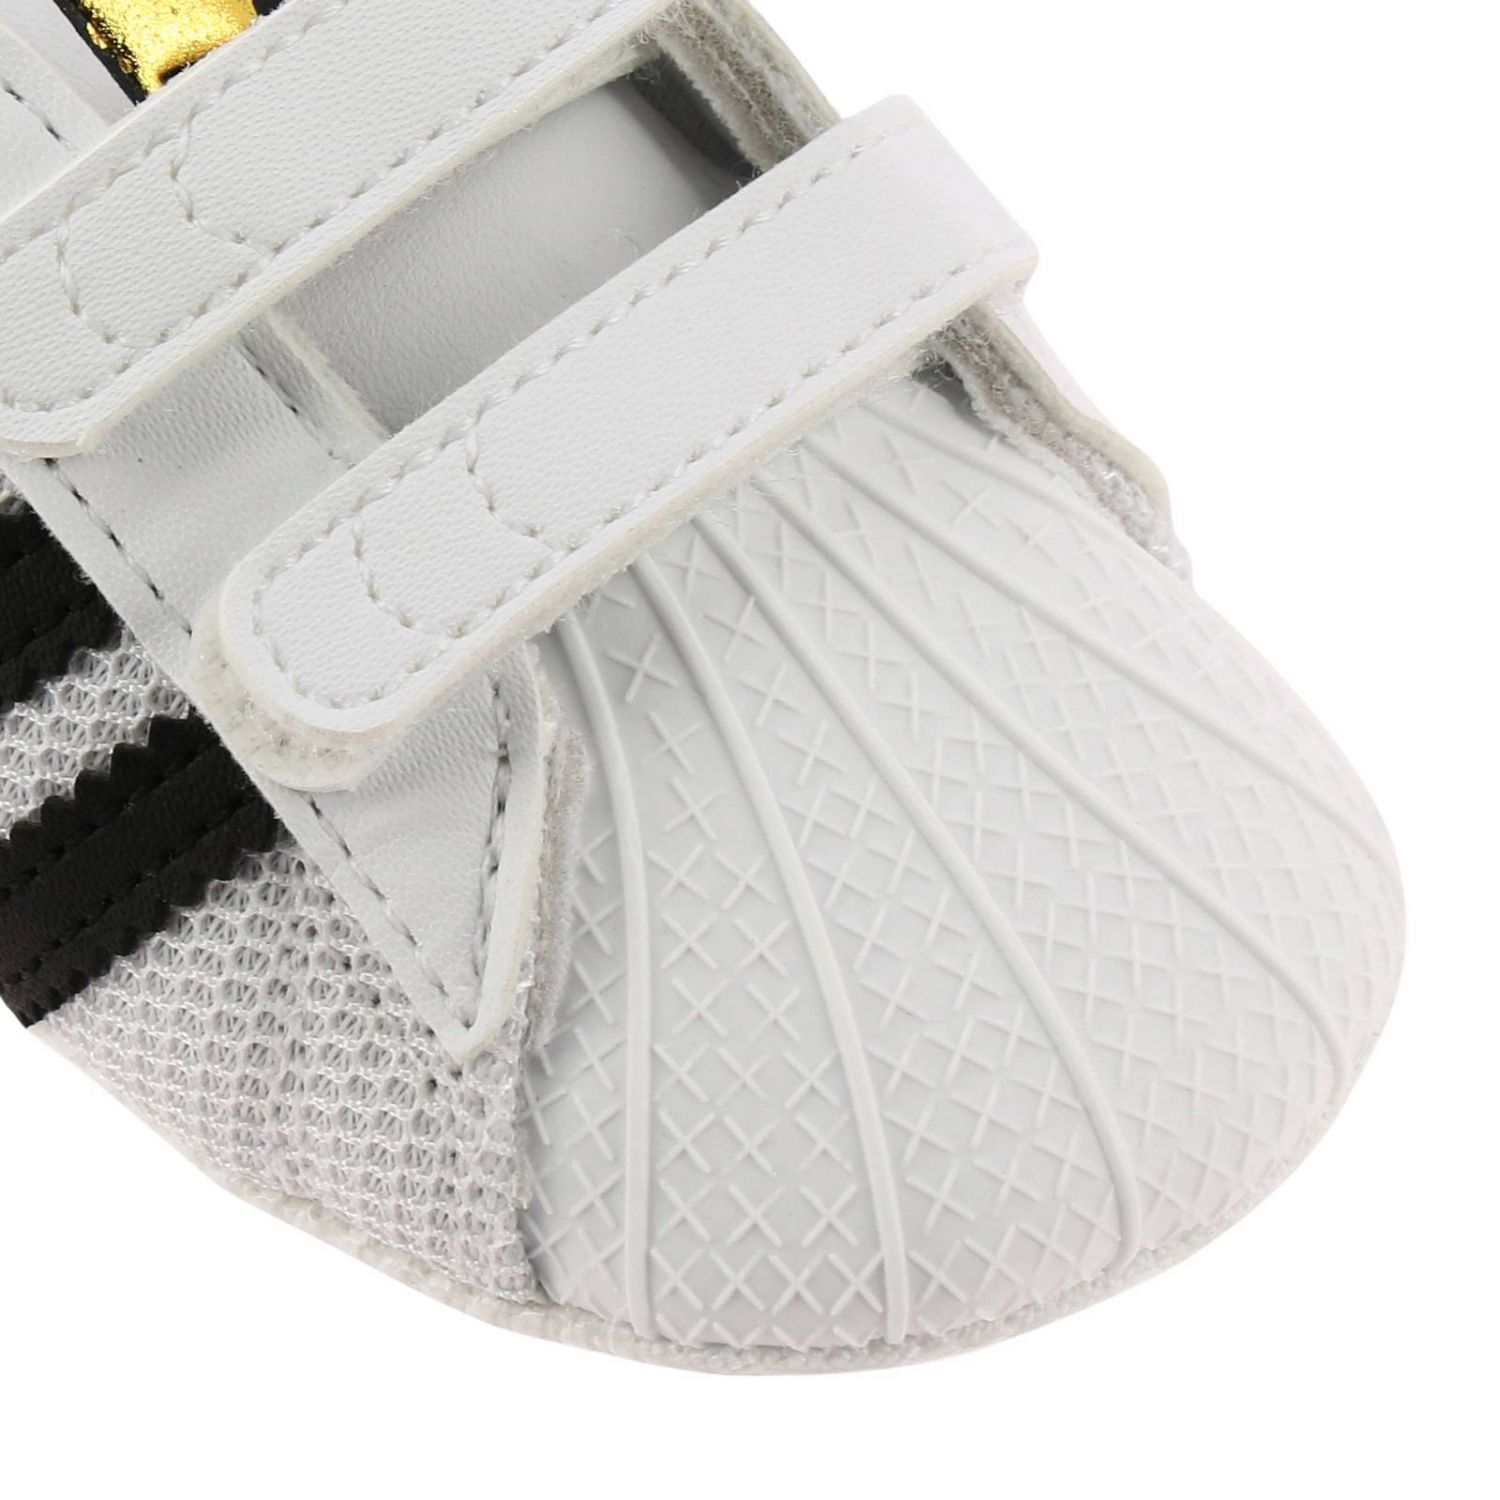 Shoes Adidas Originals: Adidas Originals Superstar sneakers in canvas and rubber white 3